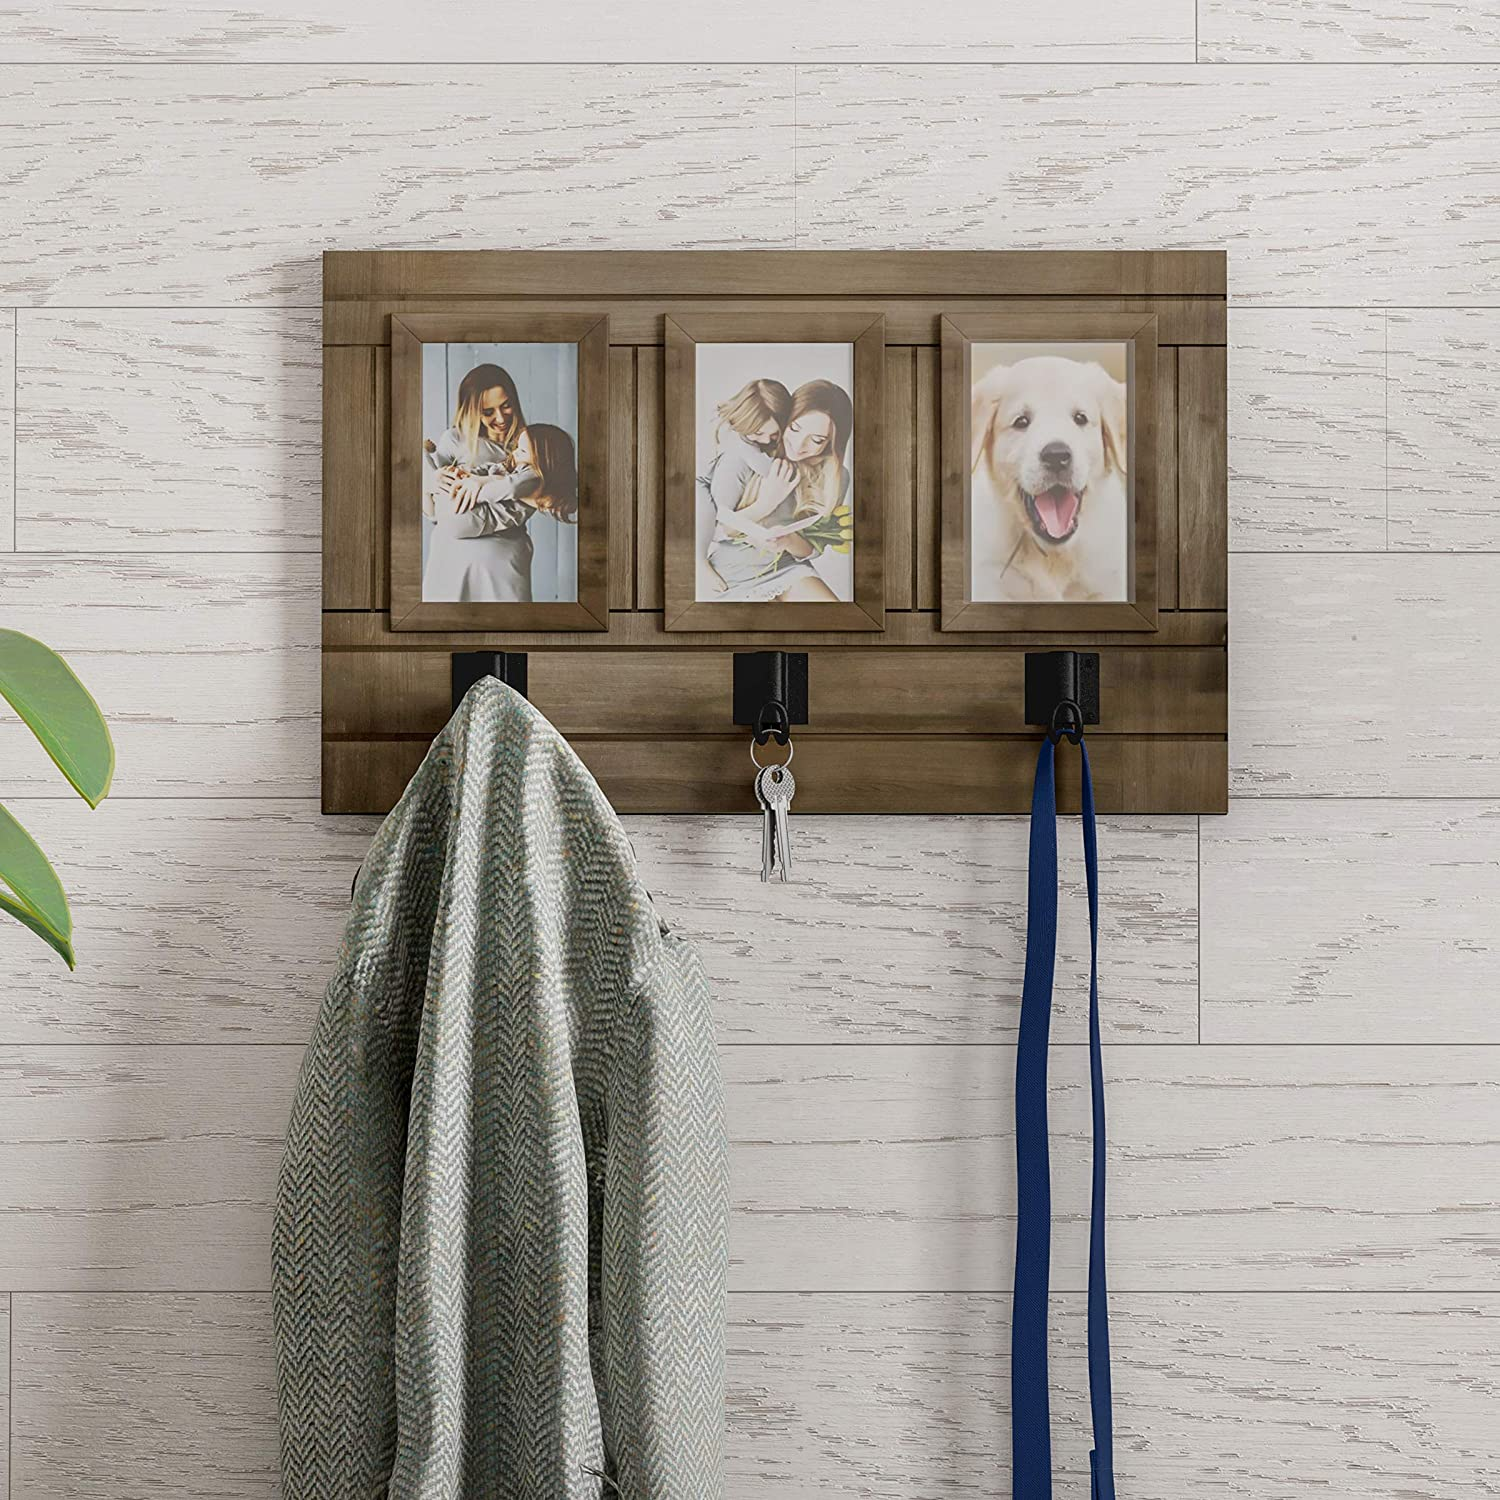 Home Collage with 3 Hanging Hooks-Wall Mounted Photo Frame Decor with Rustic Wood Look, Holds 4x6 Pictures by Lavish